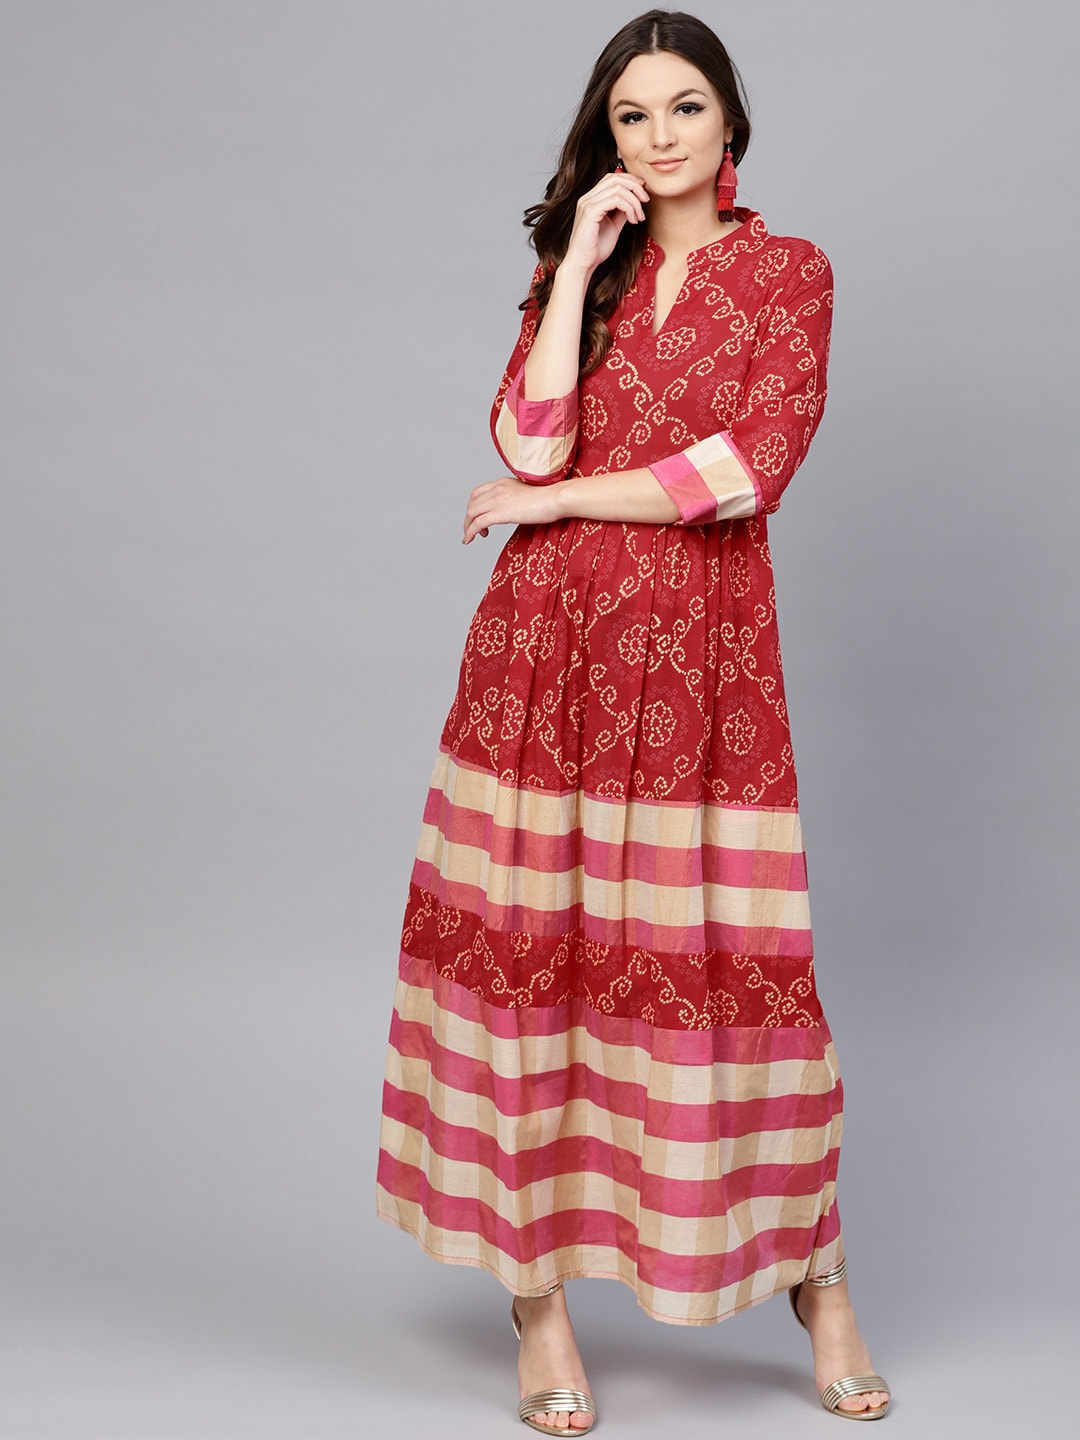 3111a2e3b6 Long Dresses - Buy Maxi Dresses for Women Online in India - Upto 70% OFF